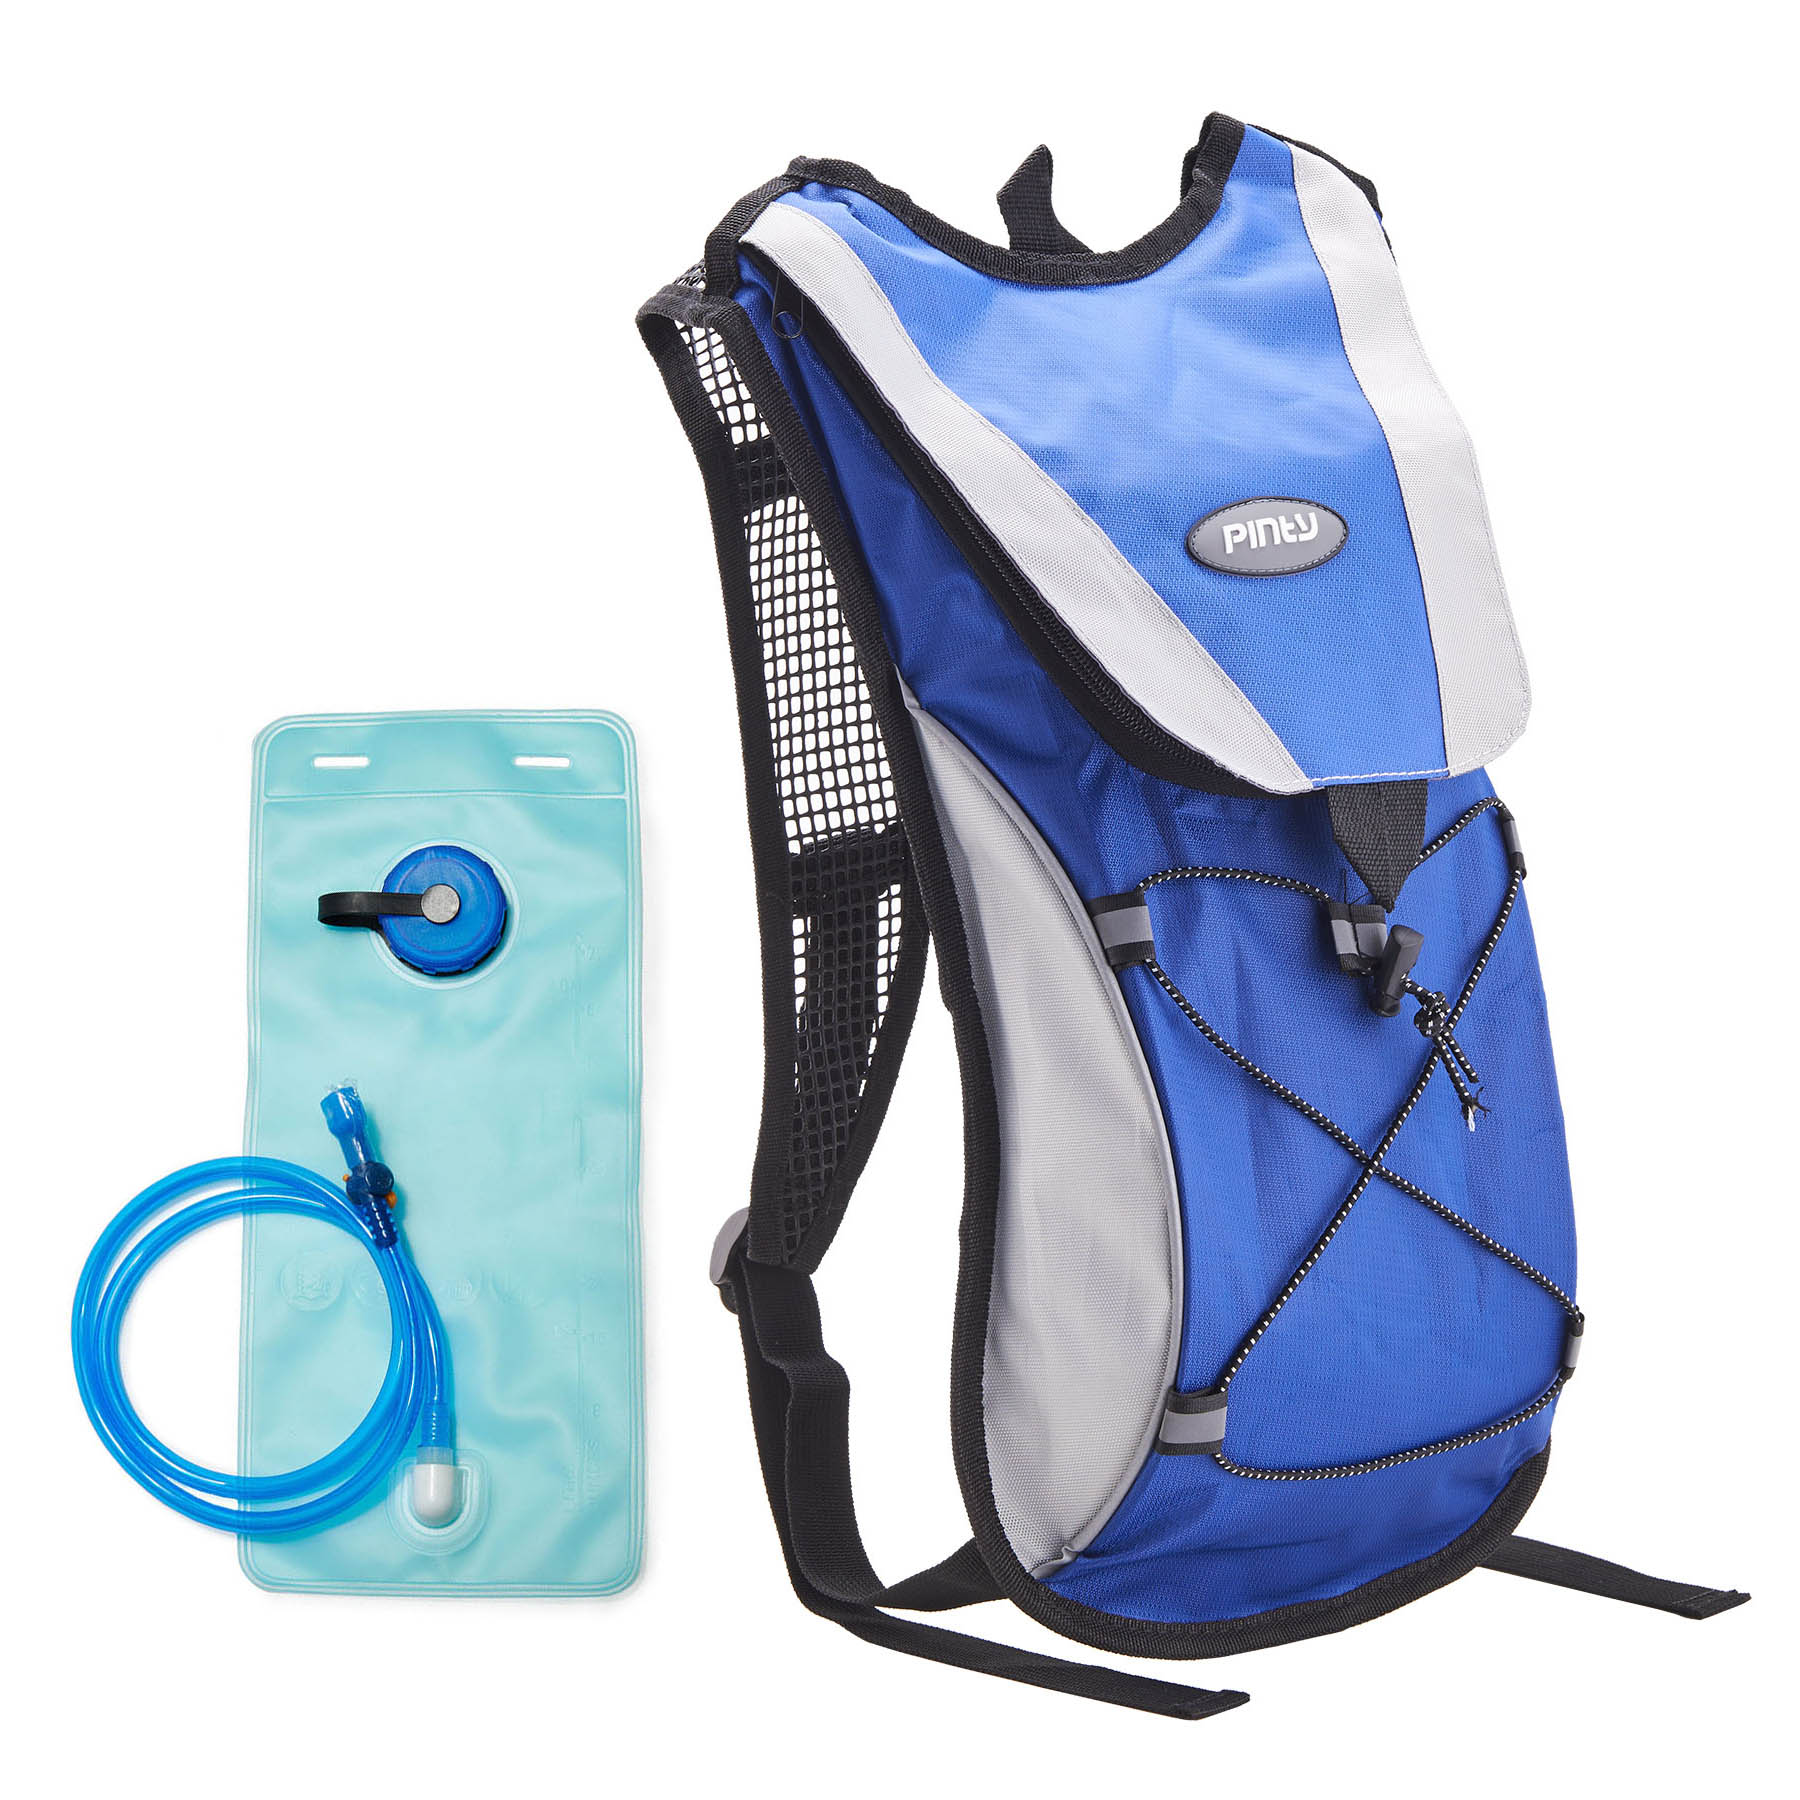 Pinty Premium Nylon Backpack with 2L Water Bladder Hydration Bag for Cycling Climbing Camping Blue